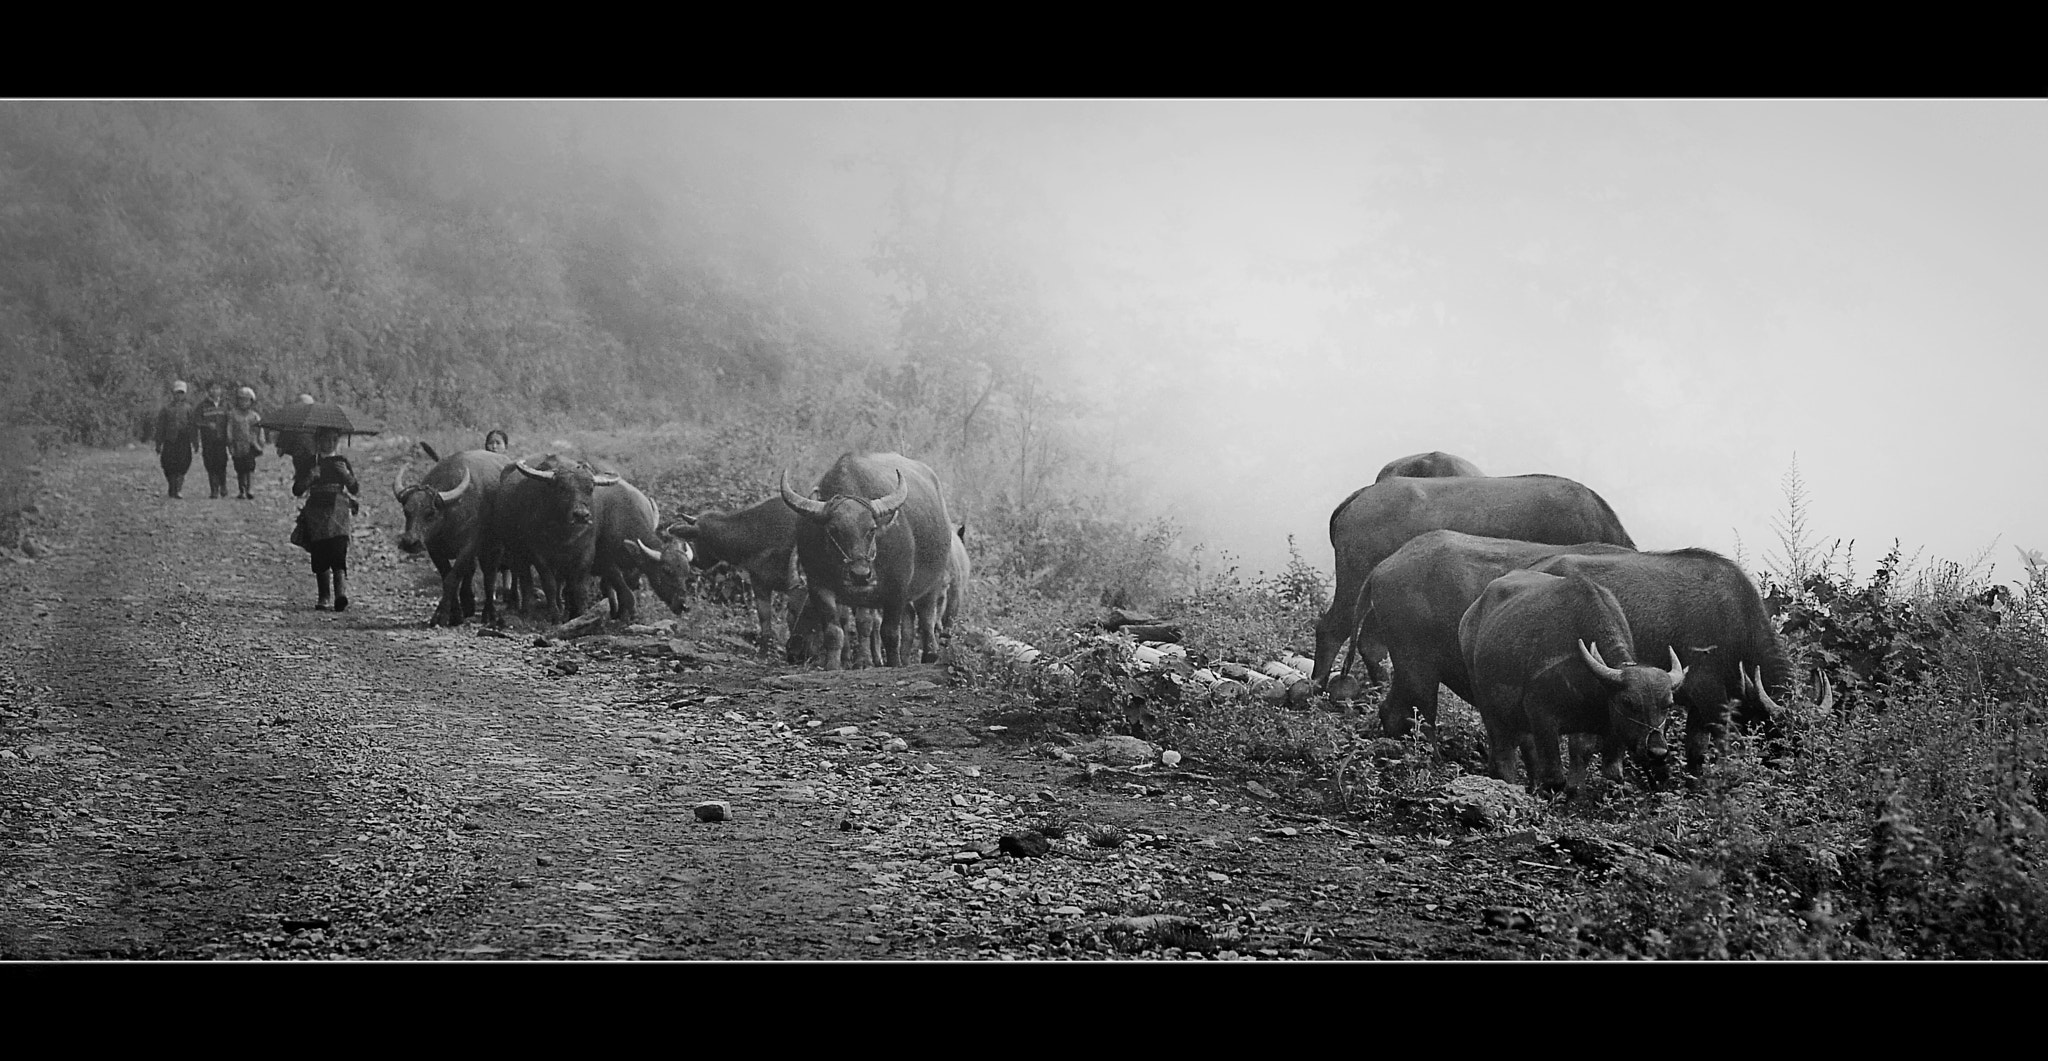 Photograph Buffalo in Lao Cai by Vu Le on 500px